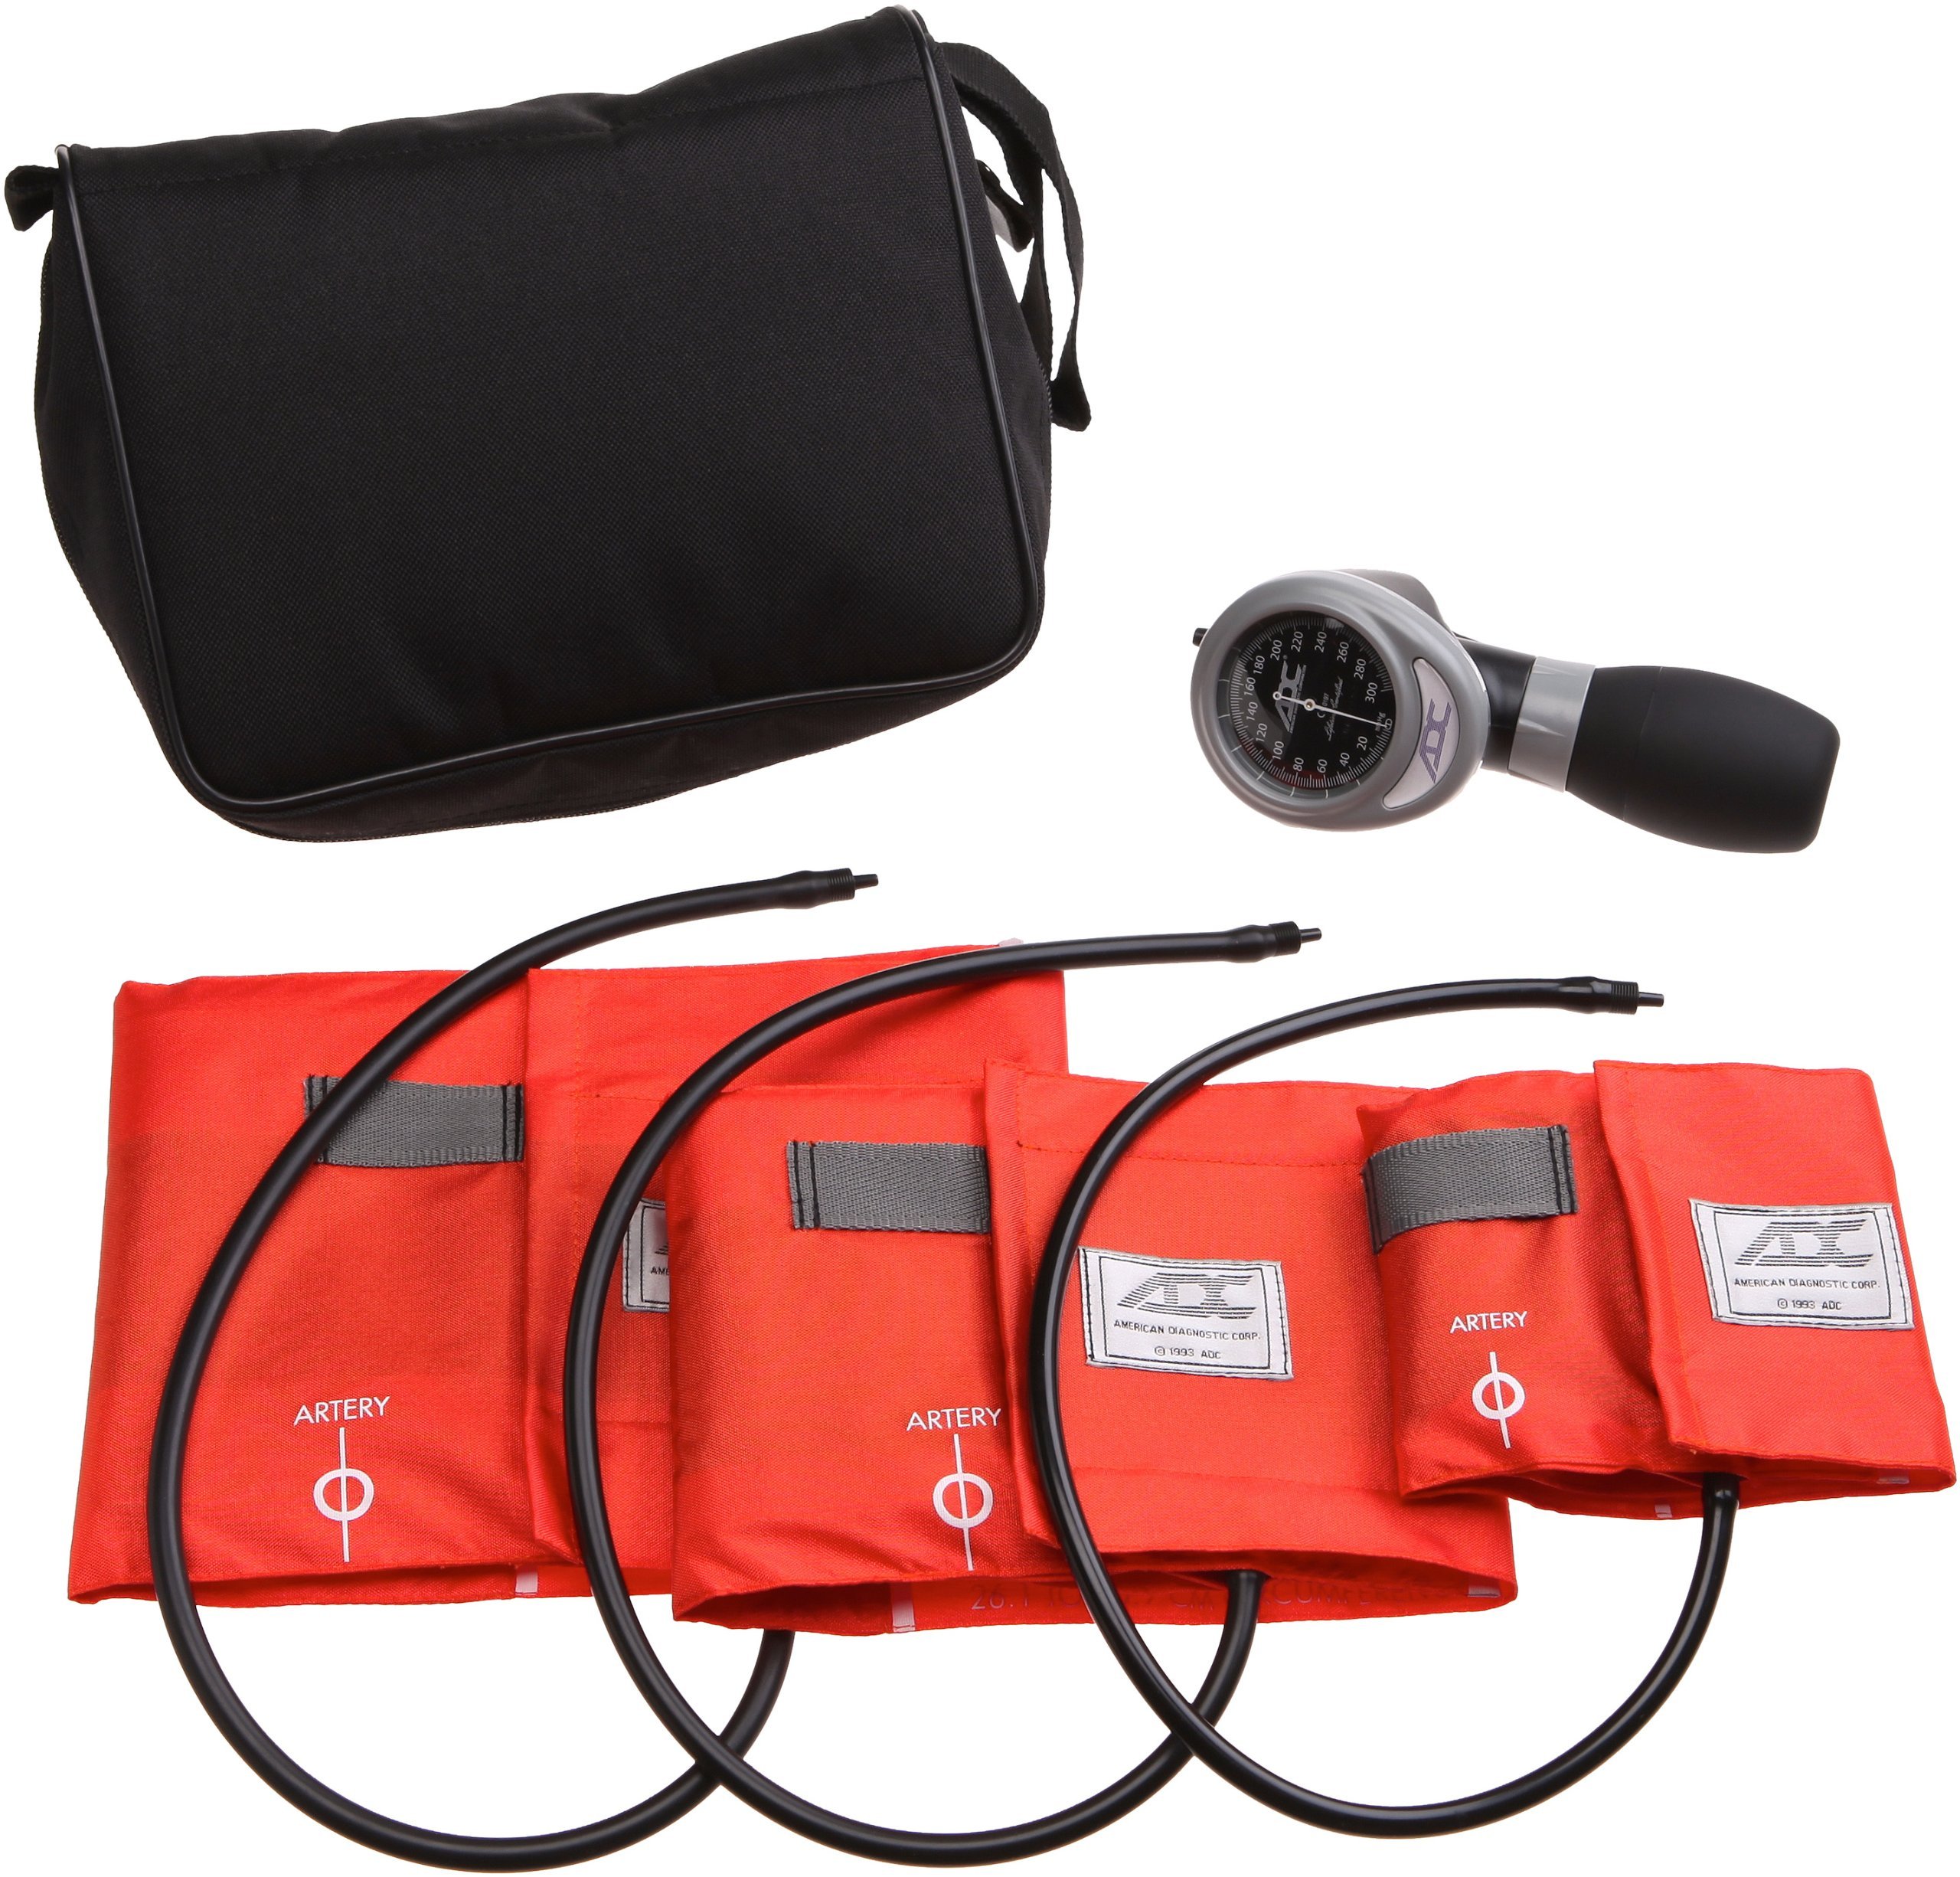 ADC Multikuf 731 3-Cuff EMT Kit with 804 Portable Palm Aneroid Sphygmomanometer, Small Adult, Adult and Large Adult Blood Pressure Cuffs (19-50 cm), Black Nylon Zipper Storage Case, Orange by ADC (Image #1)